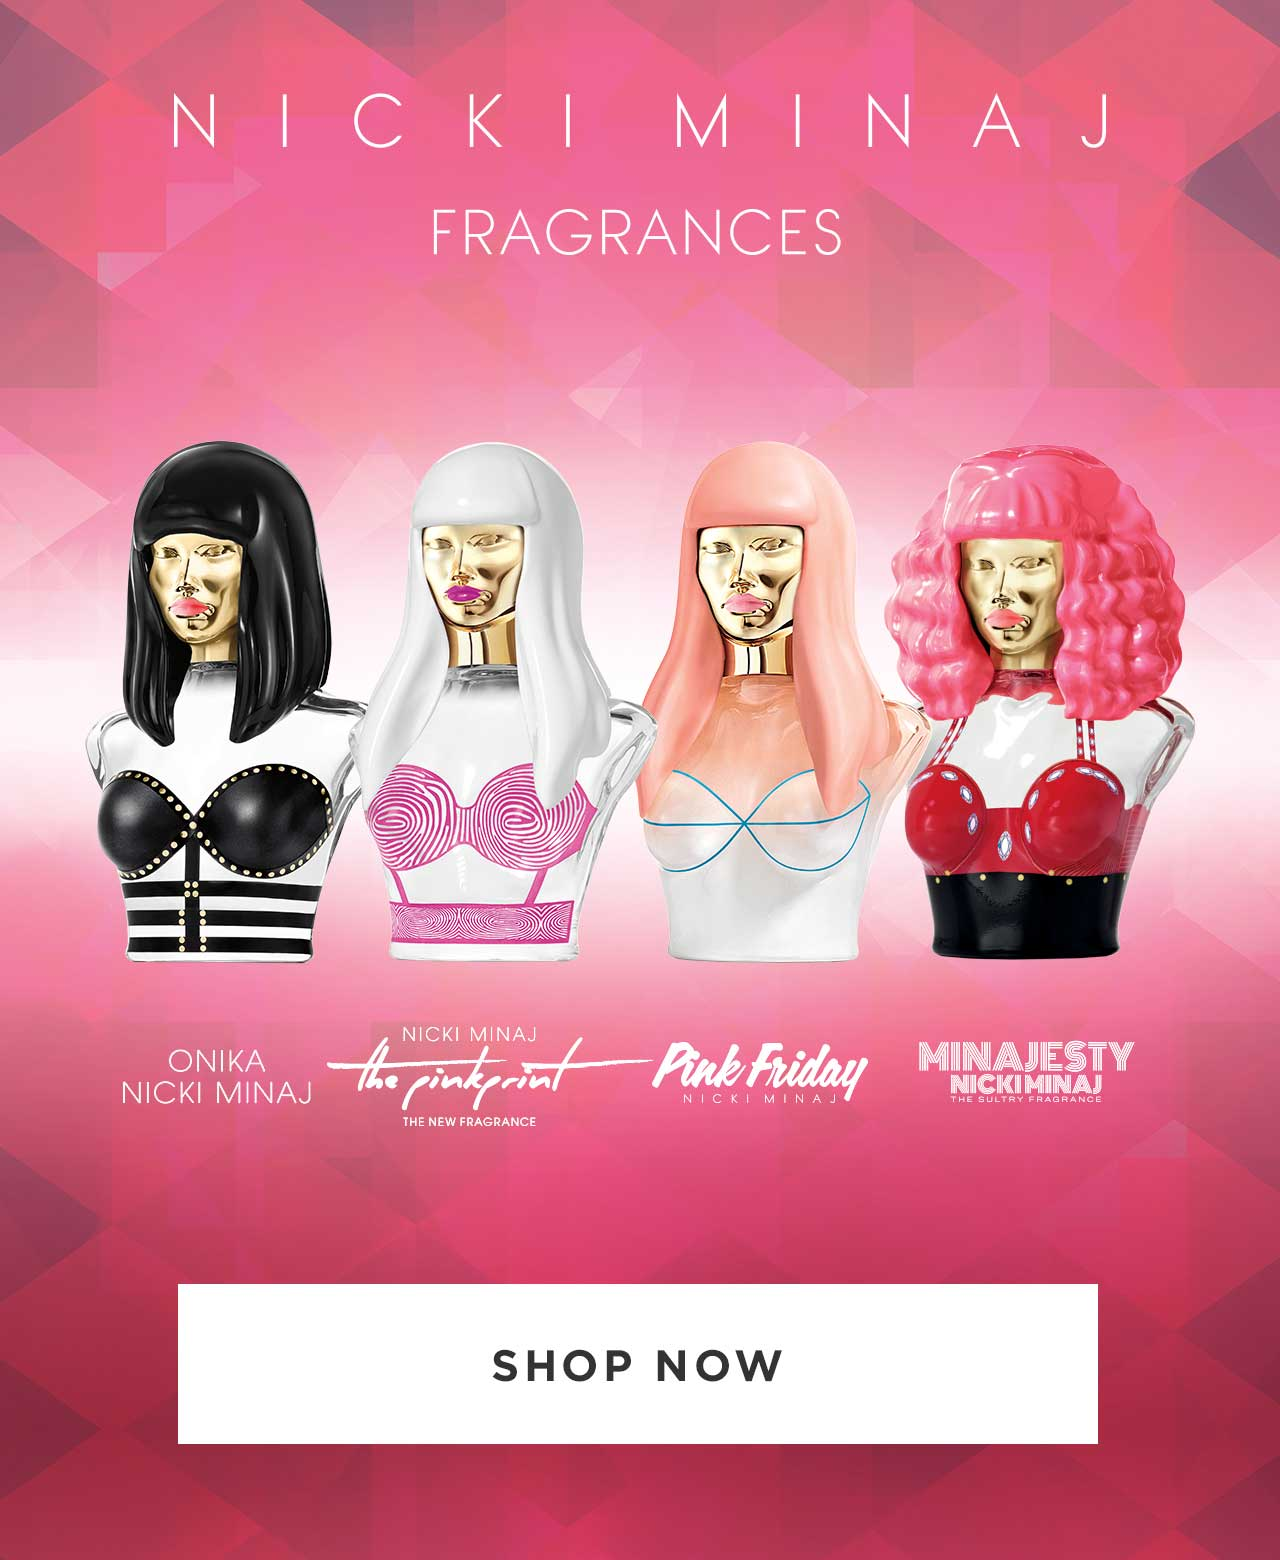 Nicki Minaj Fragrances